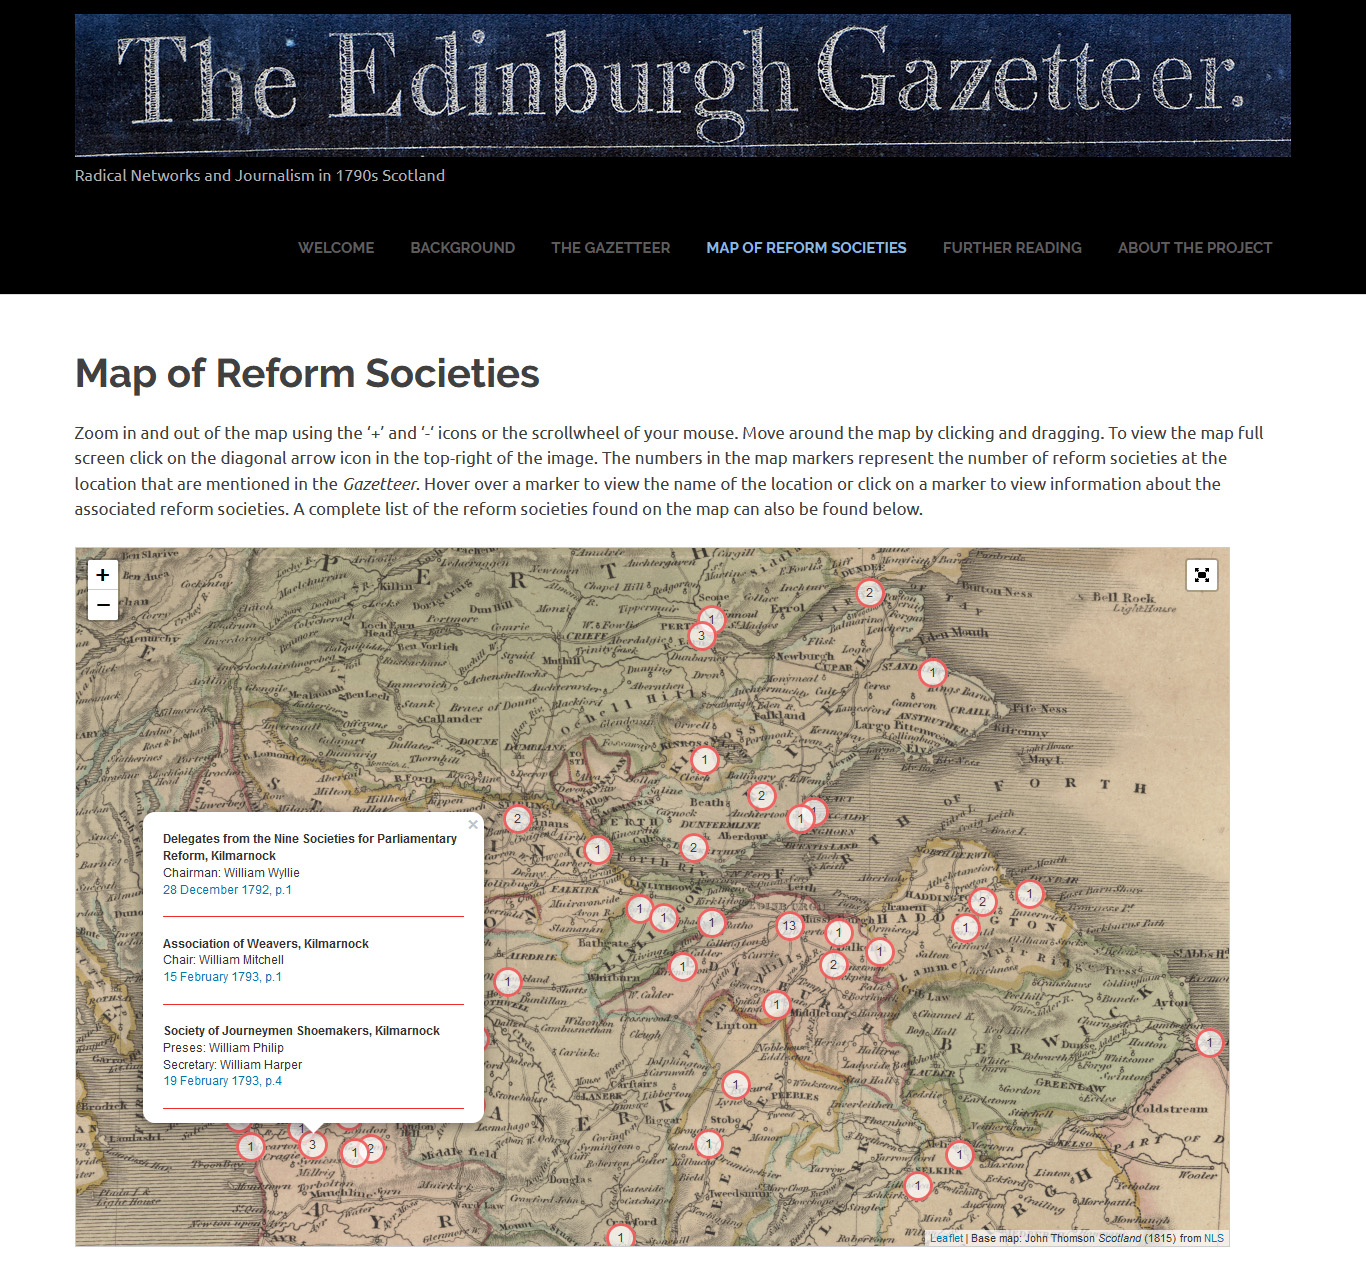 Map of Reform Societies with Kilmarnock selected, showing links to Gazetteer pages.